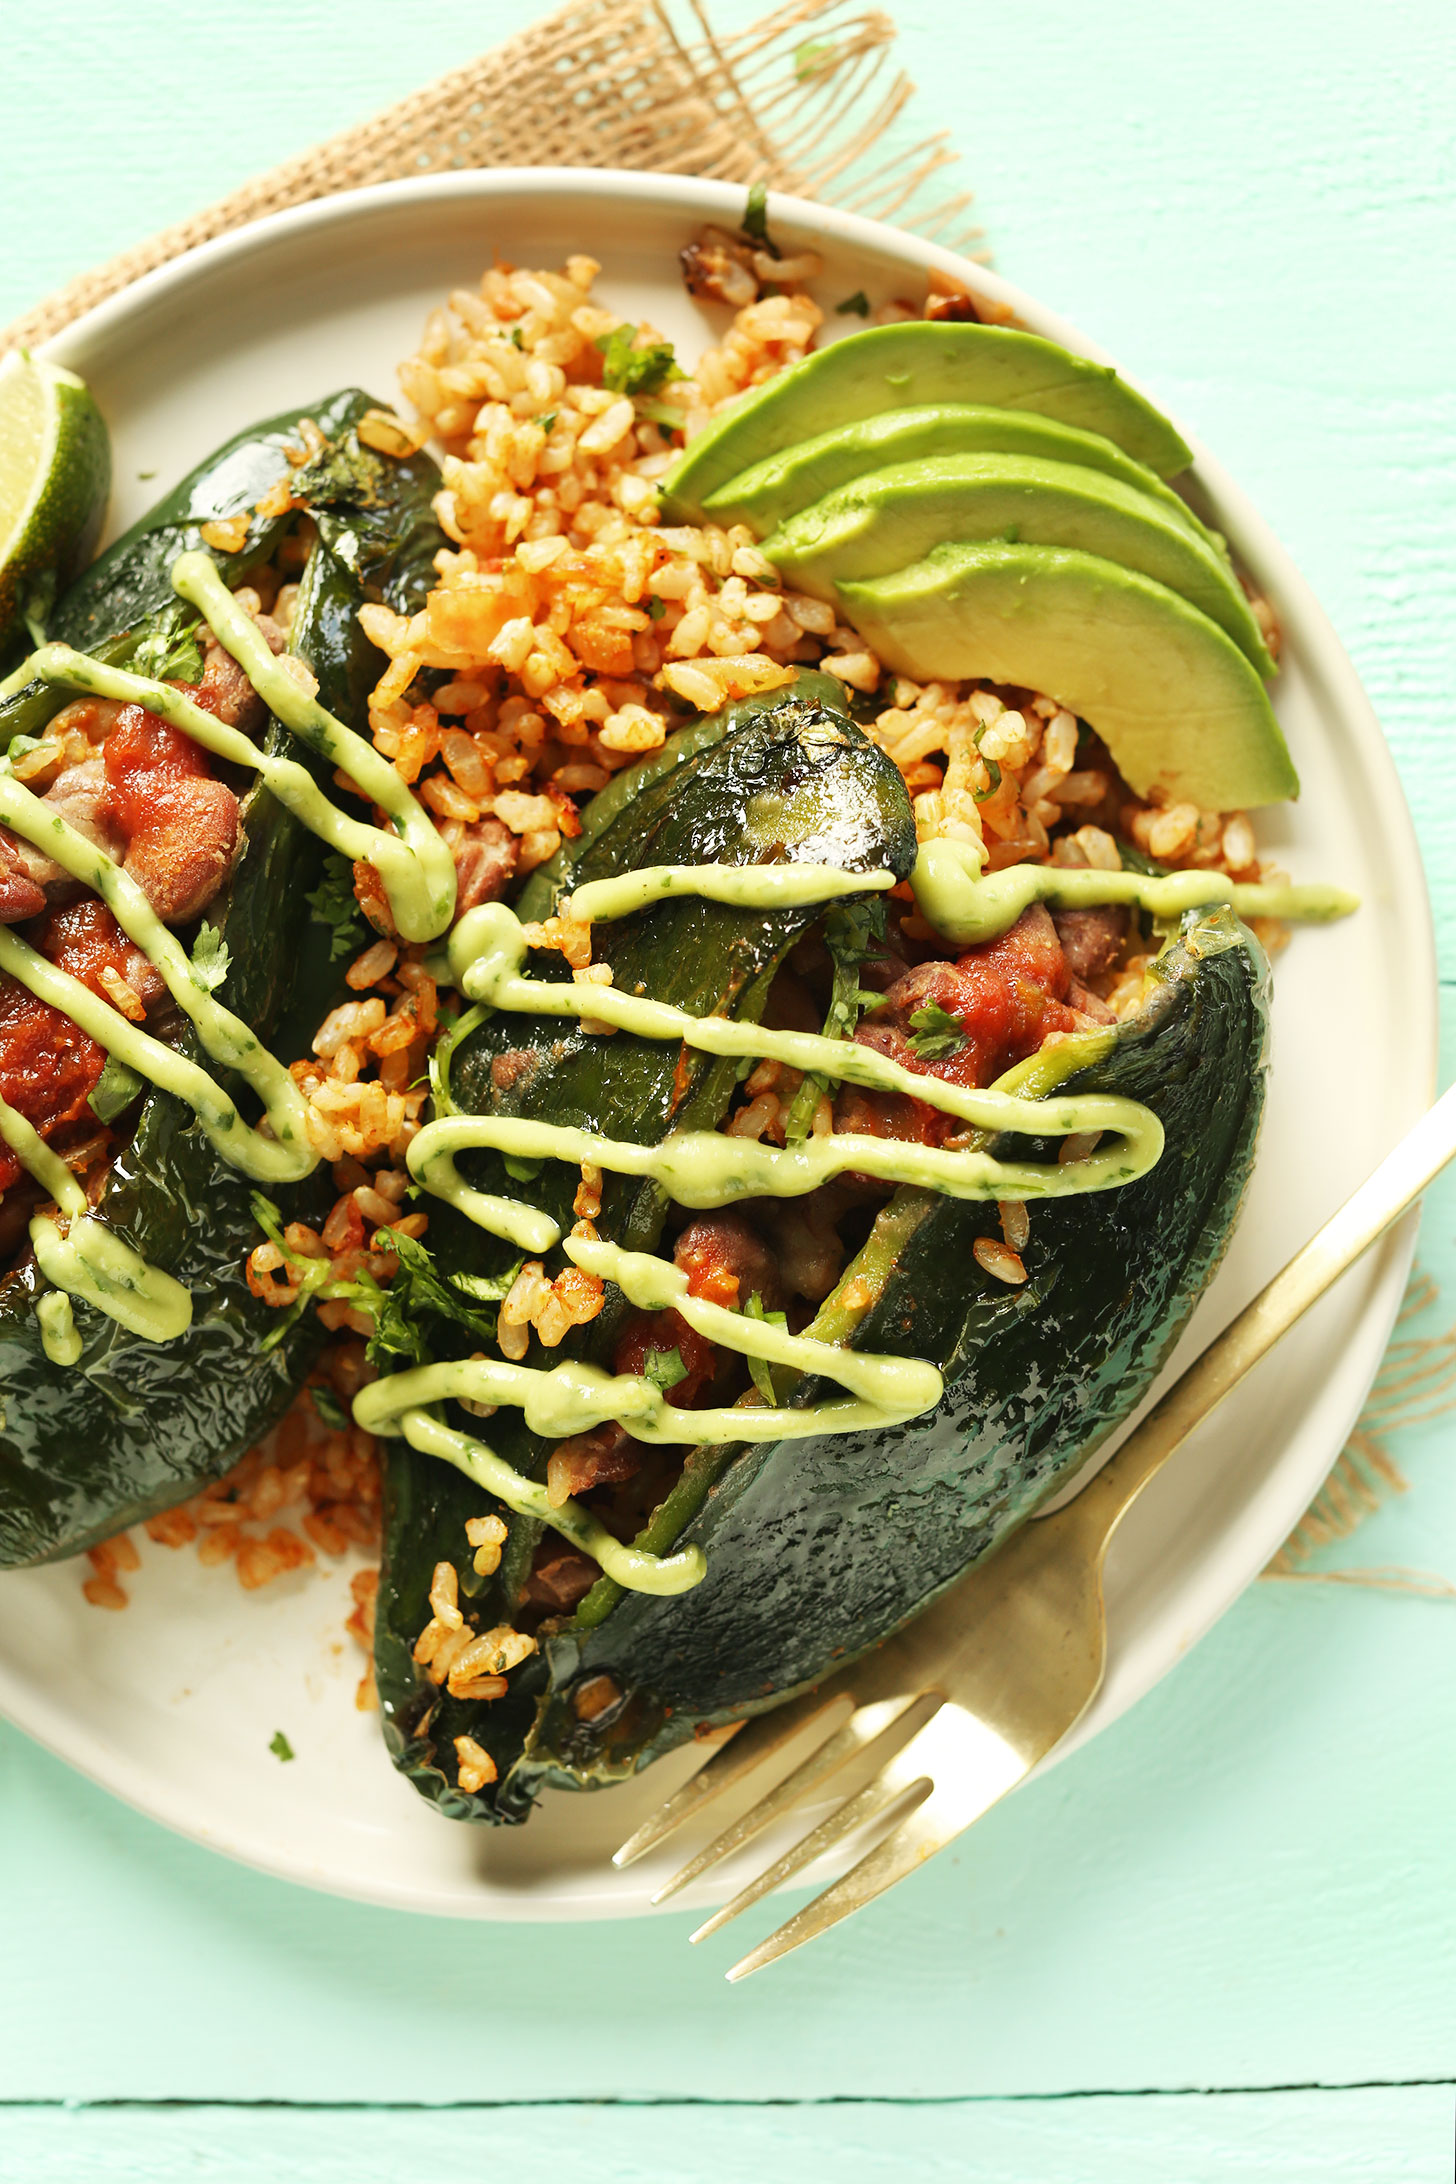 Vegan stuffed poblano peppers minimalist baker recipes plant based dinner of vegan stuffed poblano peppers on a plate forumfinder